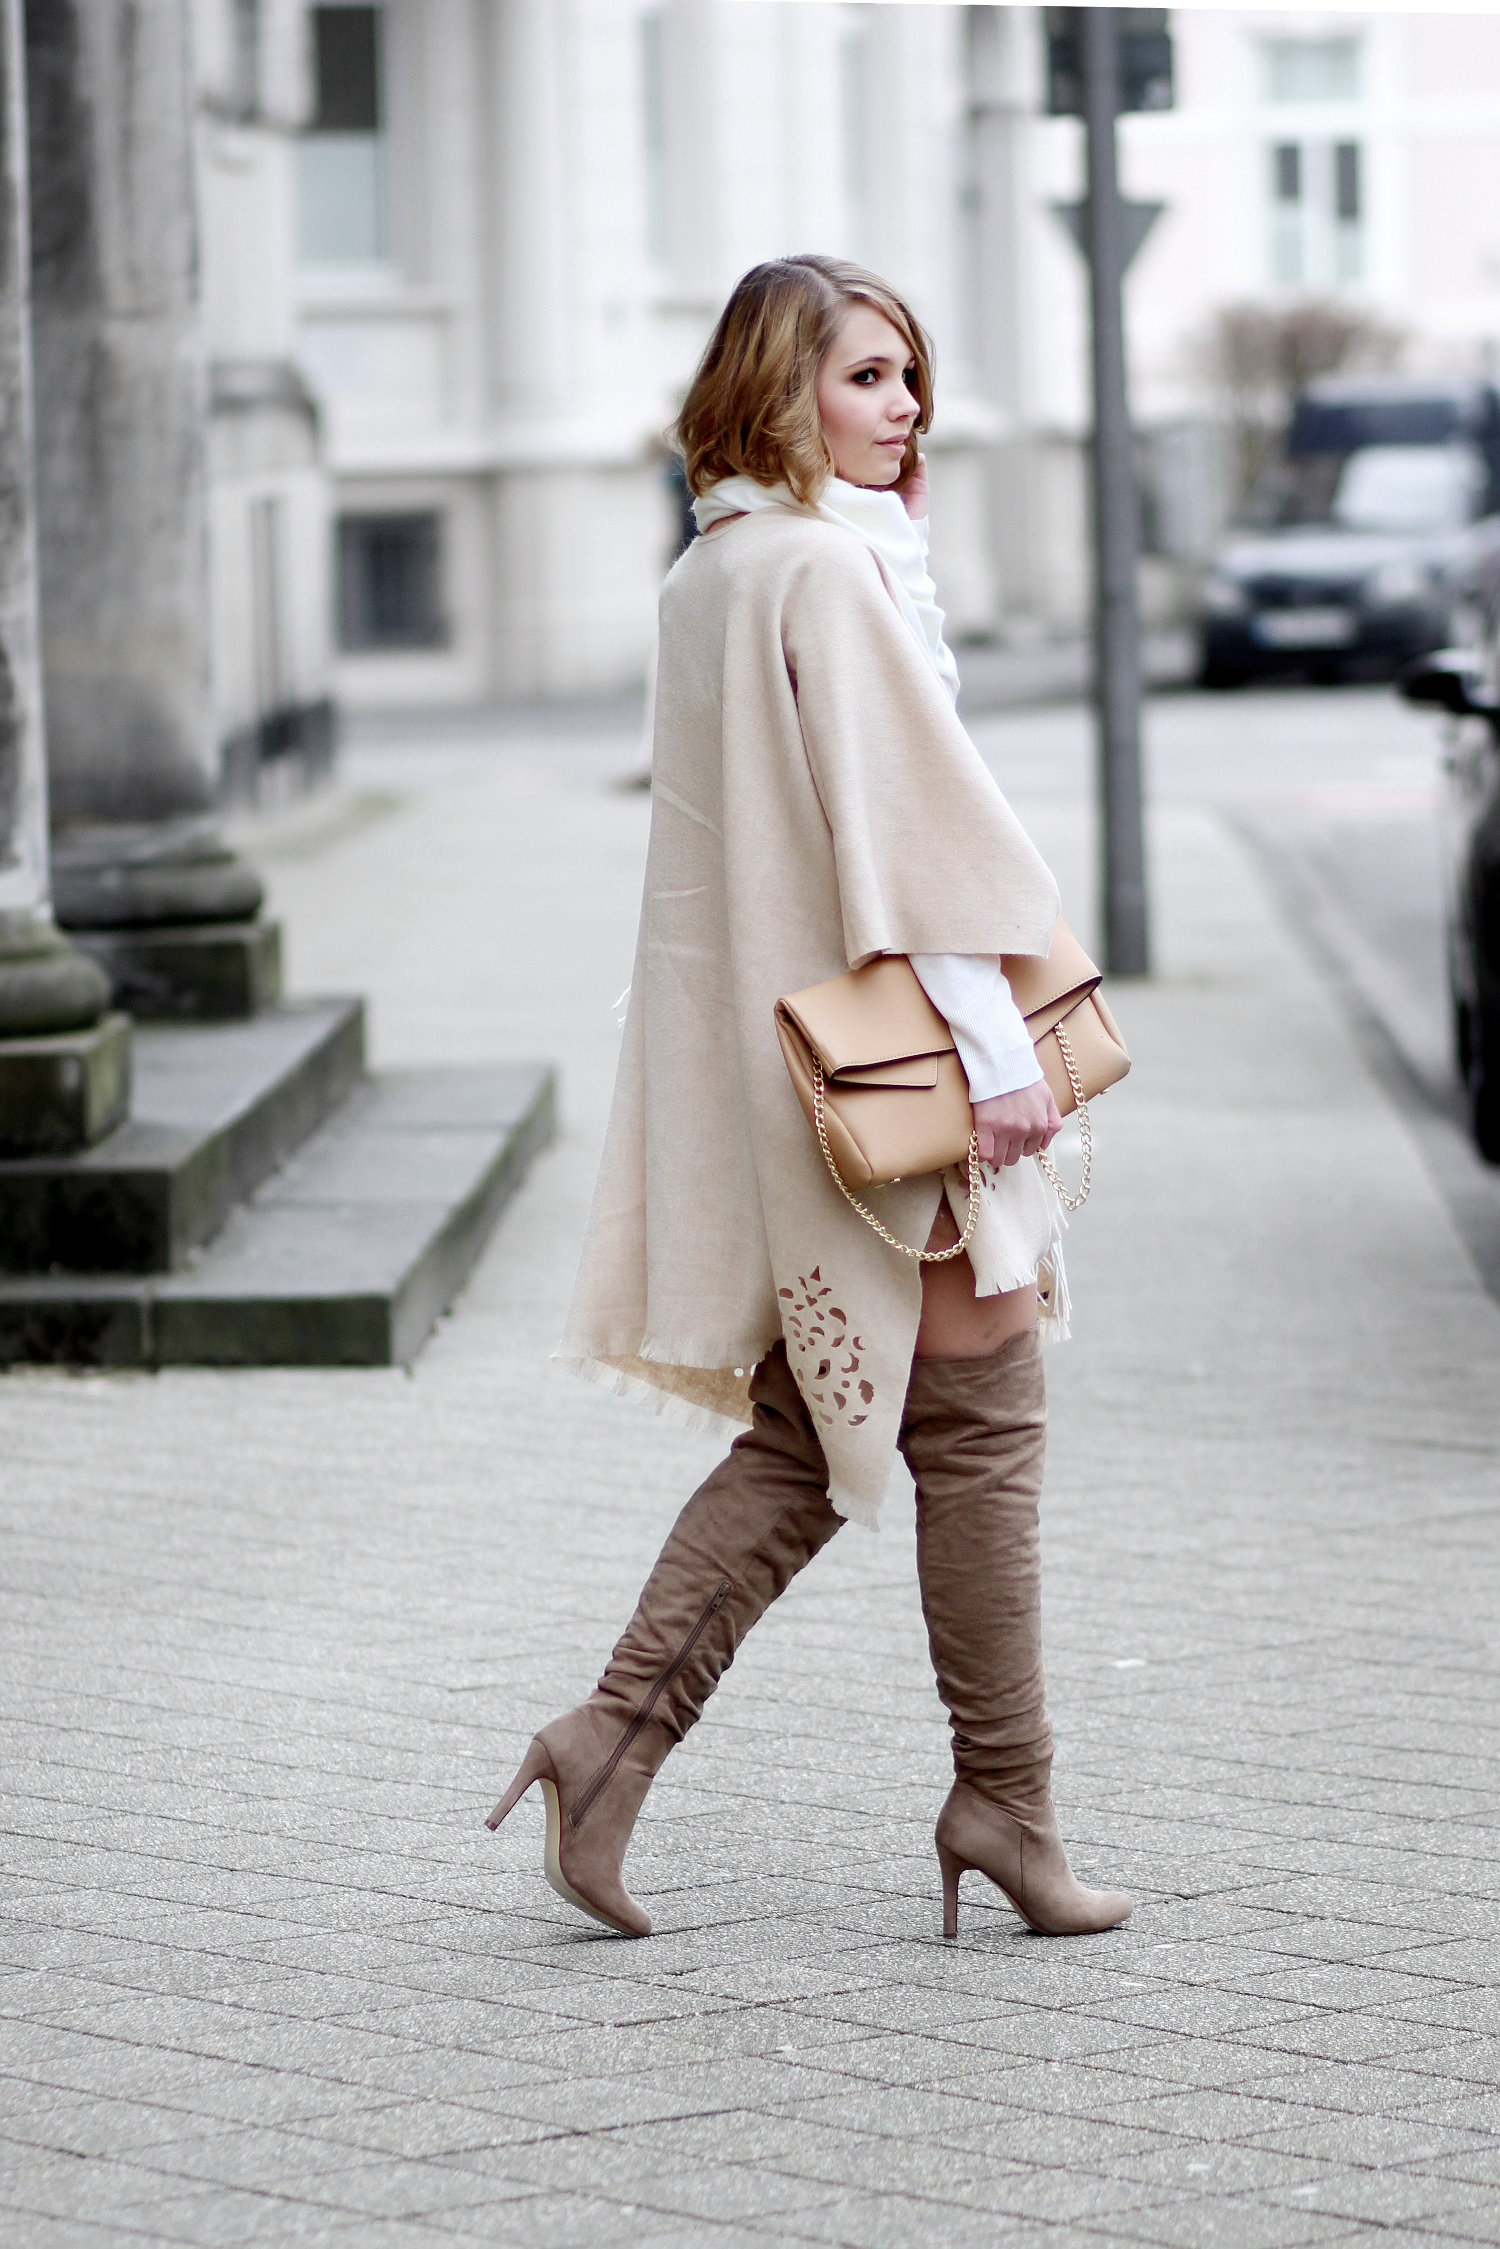 bezauberndenana-fashionblog-streetstyle-outfit-beiger-poncho-fraas-wilderlederrock-overknees-neutral (3)